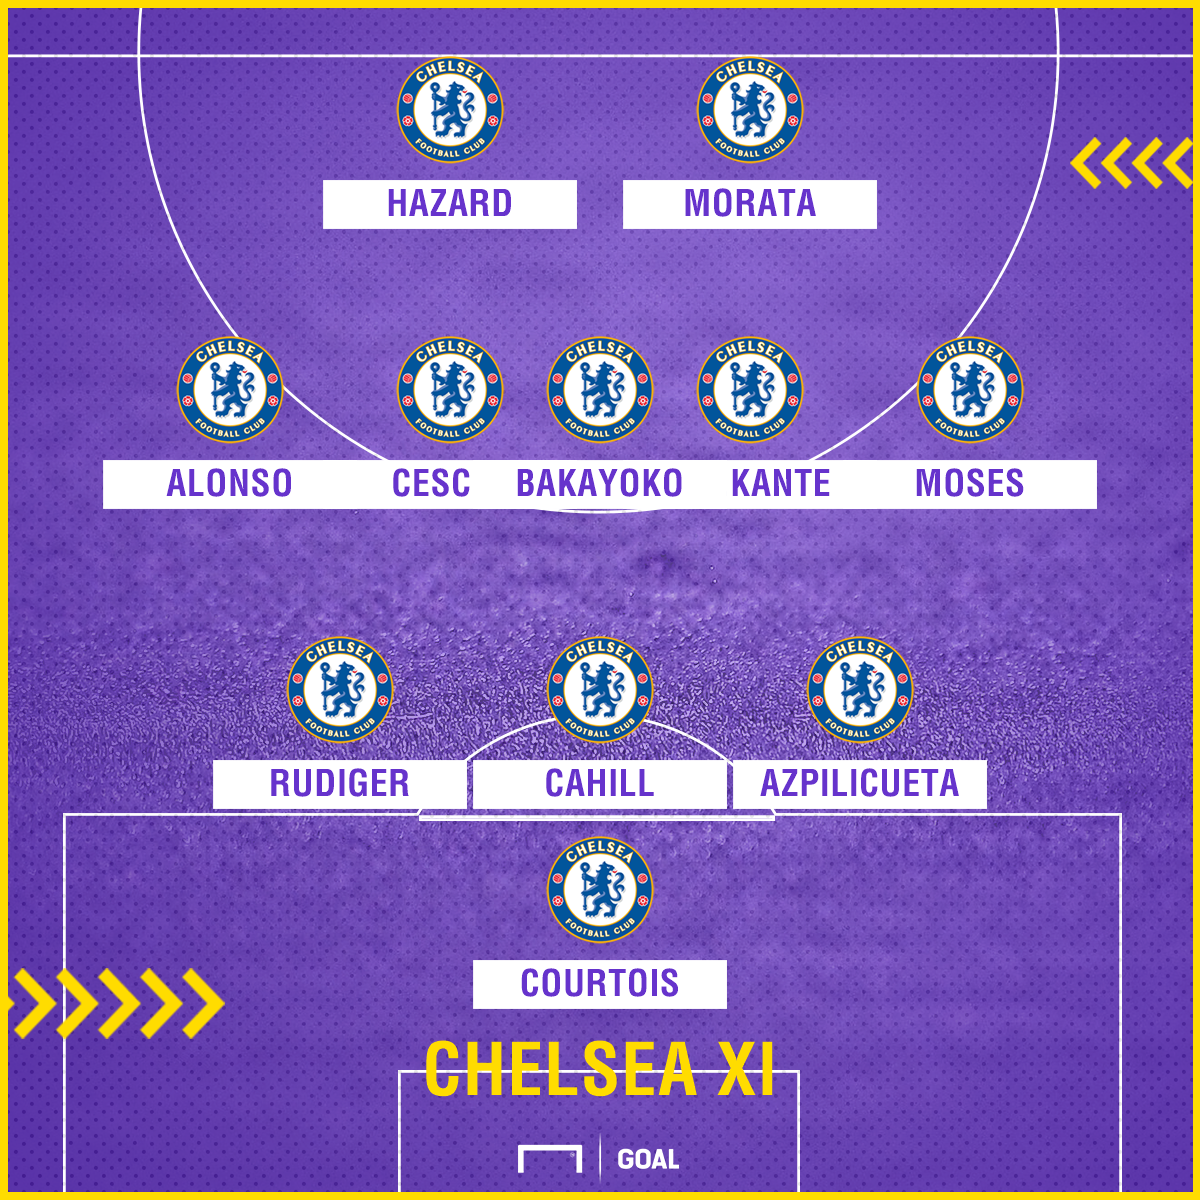 Chelsea XI v Leicester 130118